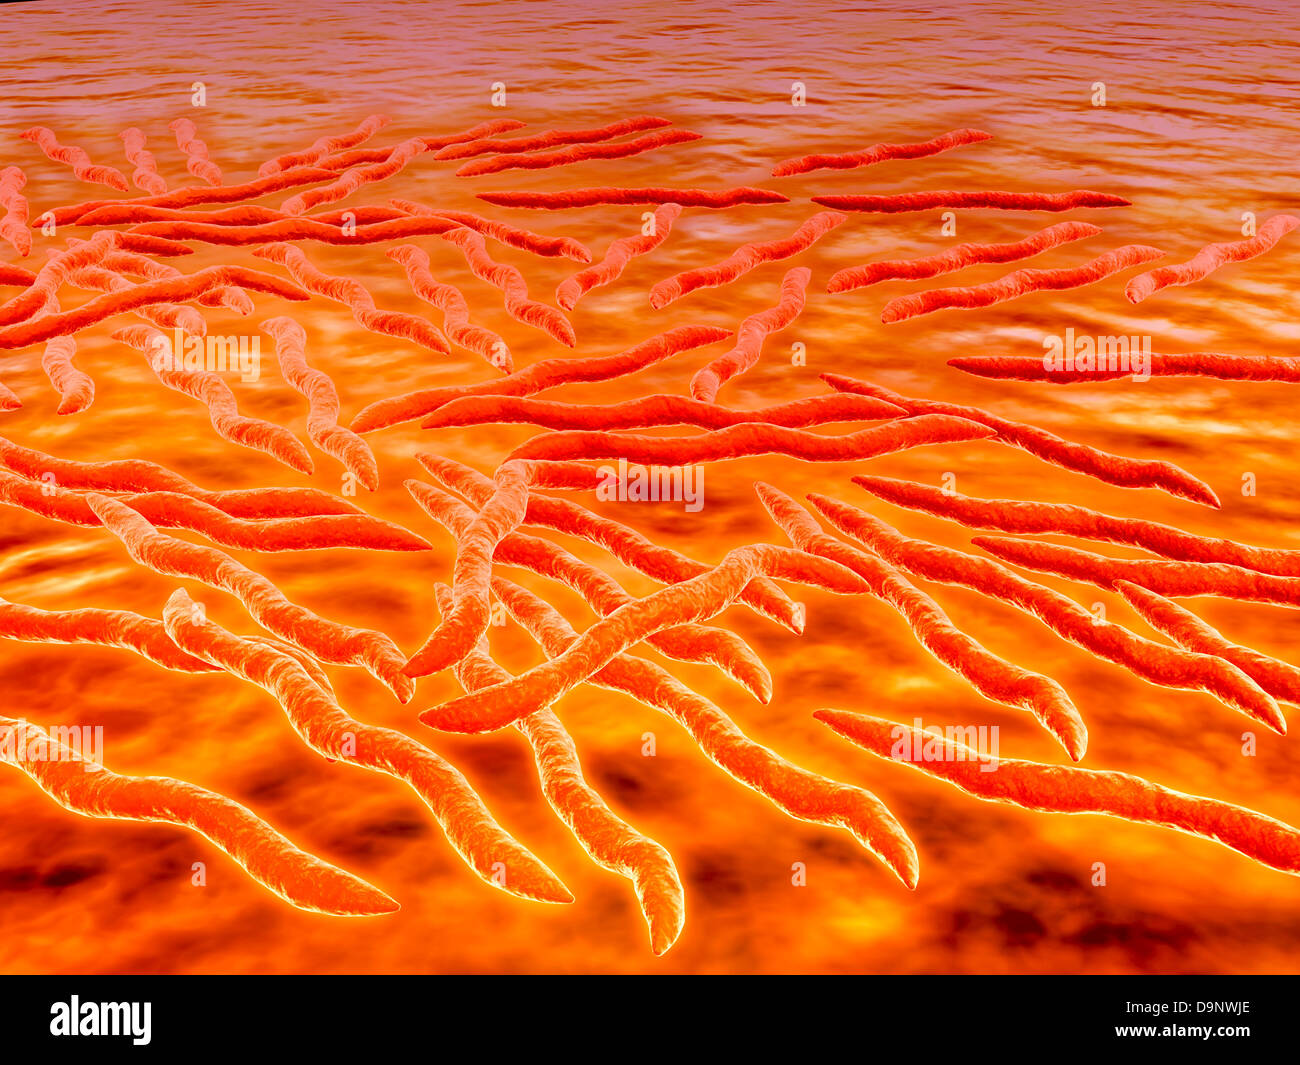 Microscopic view of a group of Borrelia burgdorferi, the bacterial agent of Lyme disease transmitted by ticks. - Stock Image